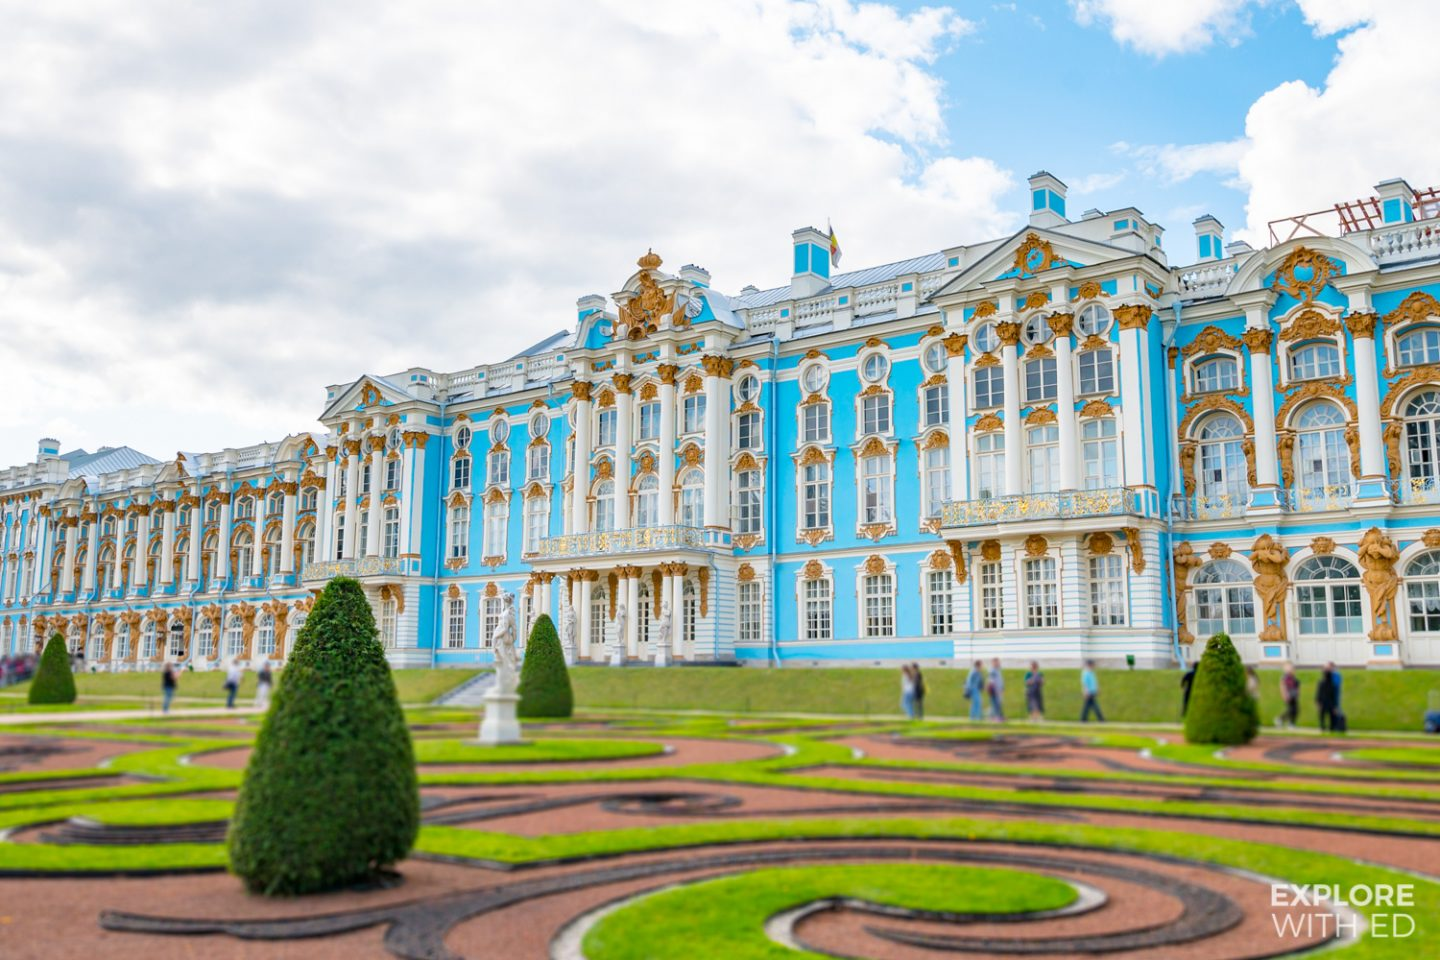 Exploring Catherine The Great's Palaces in Saint Petersburg, Russia